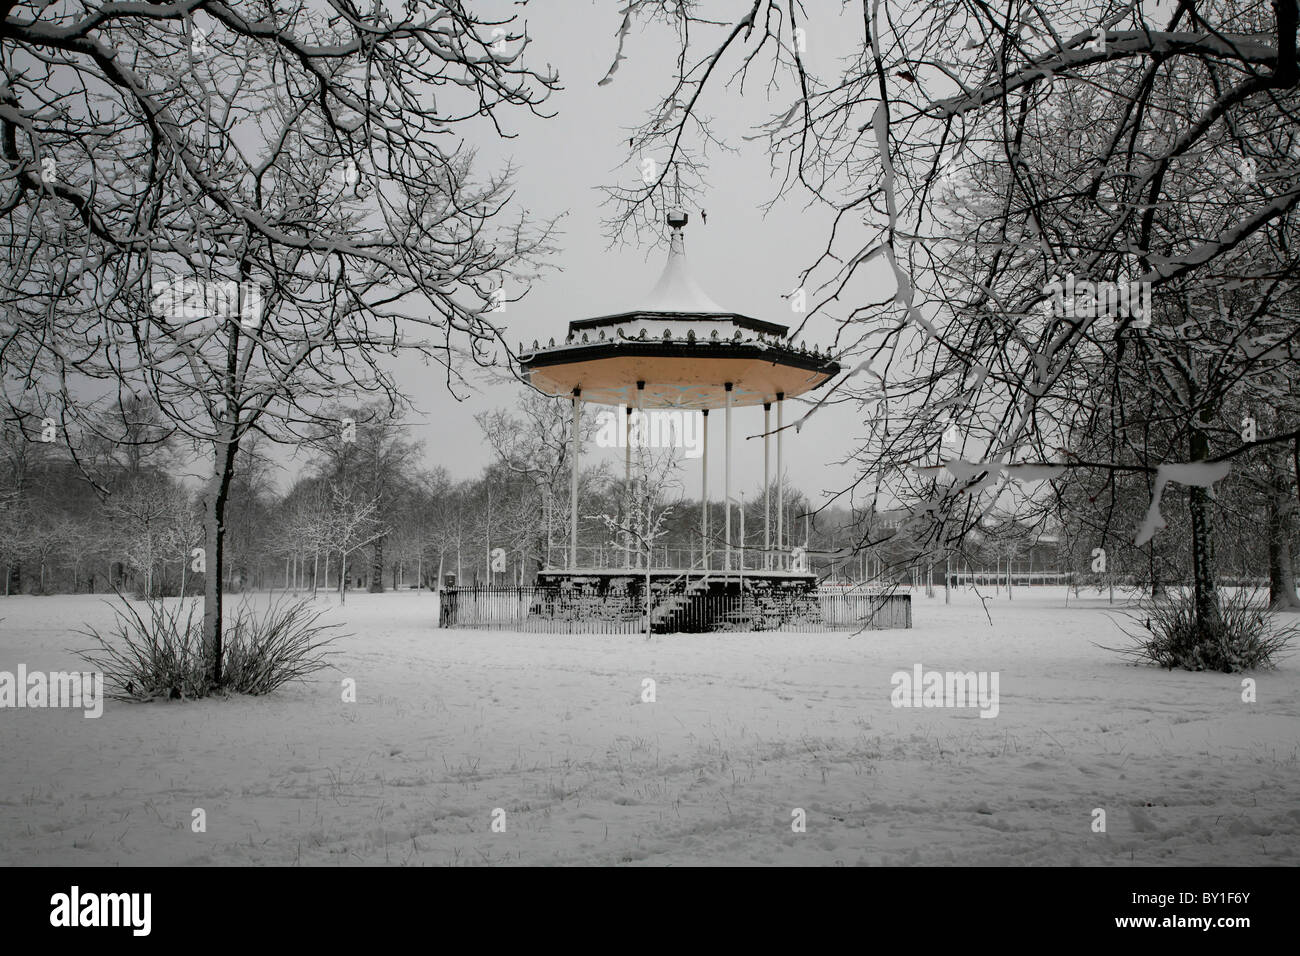 Heavy snow by the bandstand in Kensington Gardens, London, UK - Stock Image